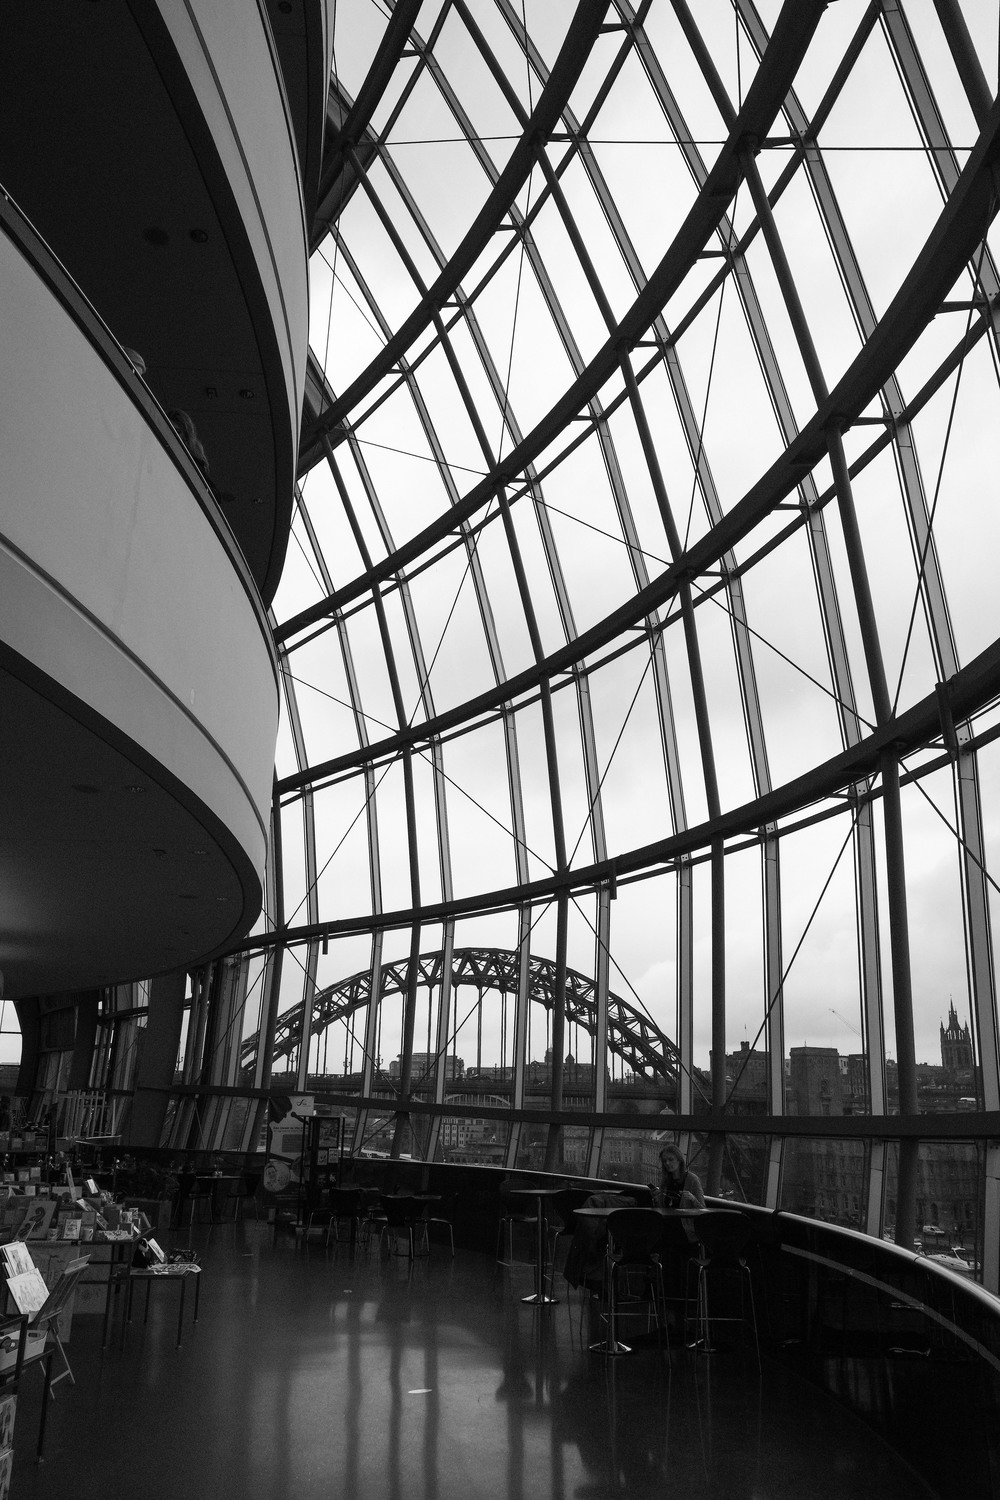 You can see the Tyne Bridge through the curved glass of the Sage Gateshead